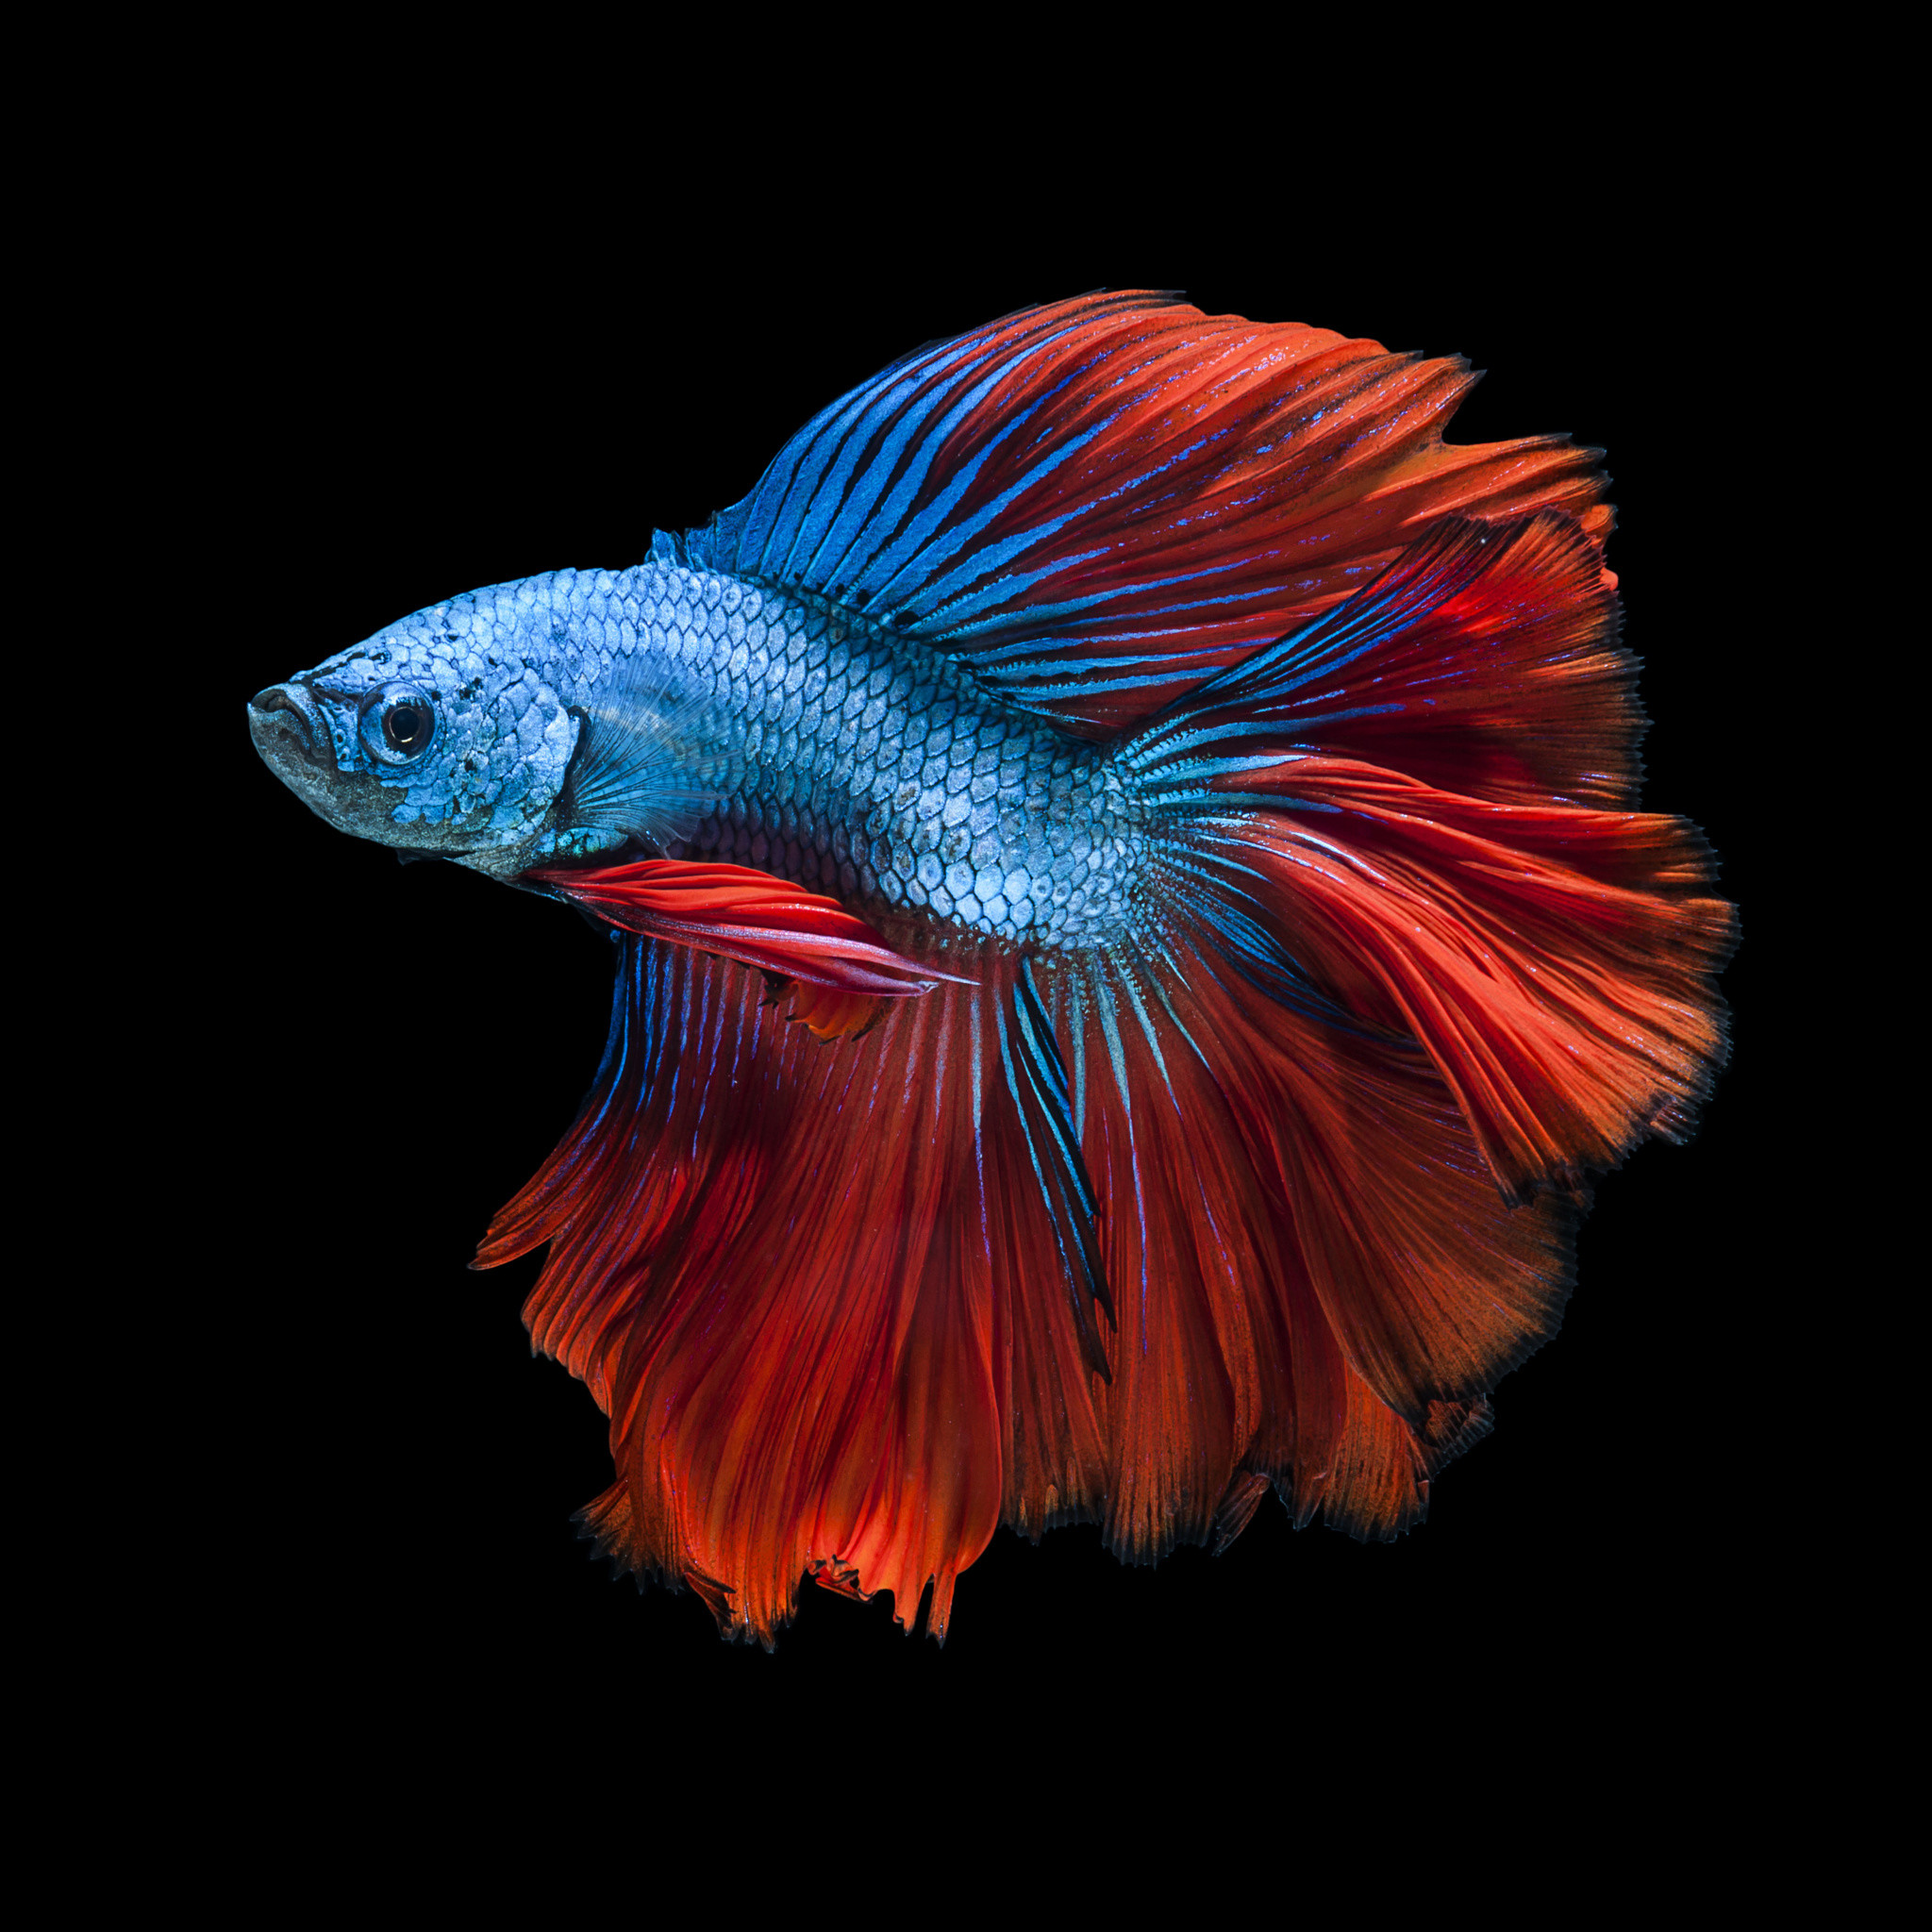 2048x2048 Capture the moving moment of red-blue siamese fighting fish by Jirawat  Plekhongthu on 500px. Colorful FishTropical FishFish WallpaperIphone 6 ...